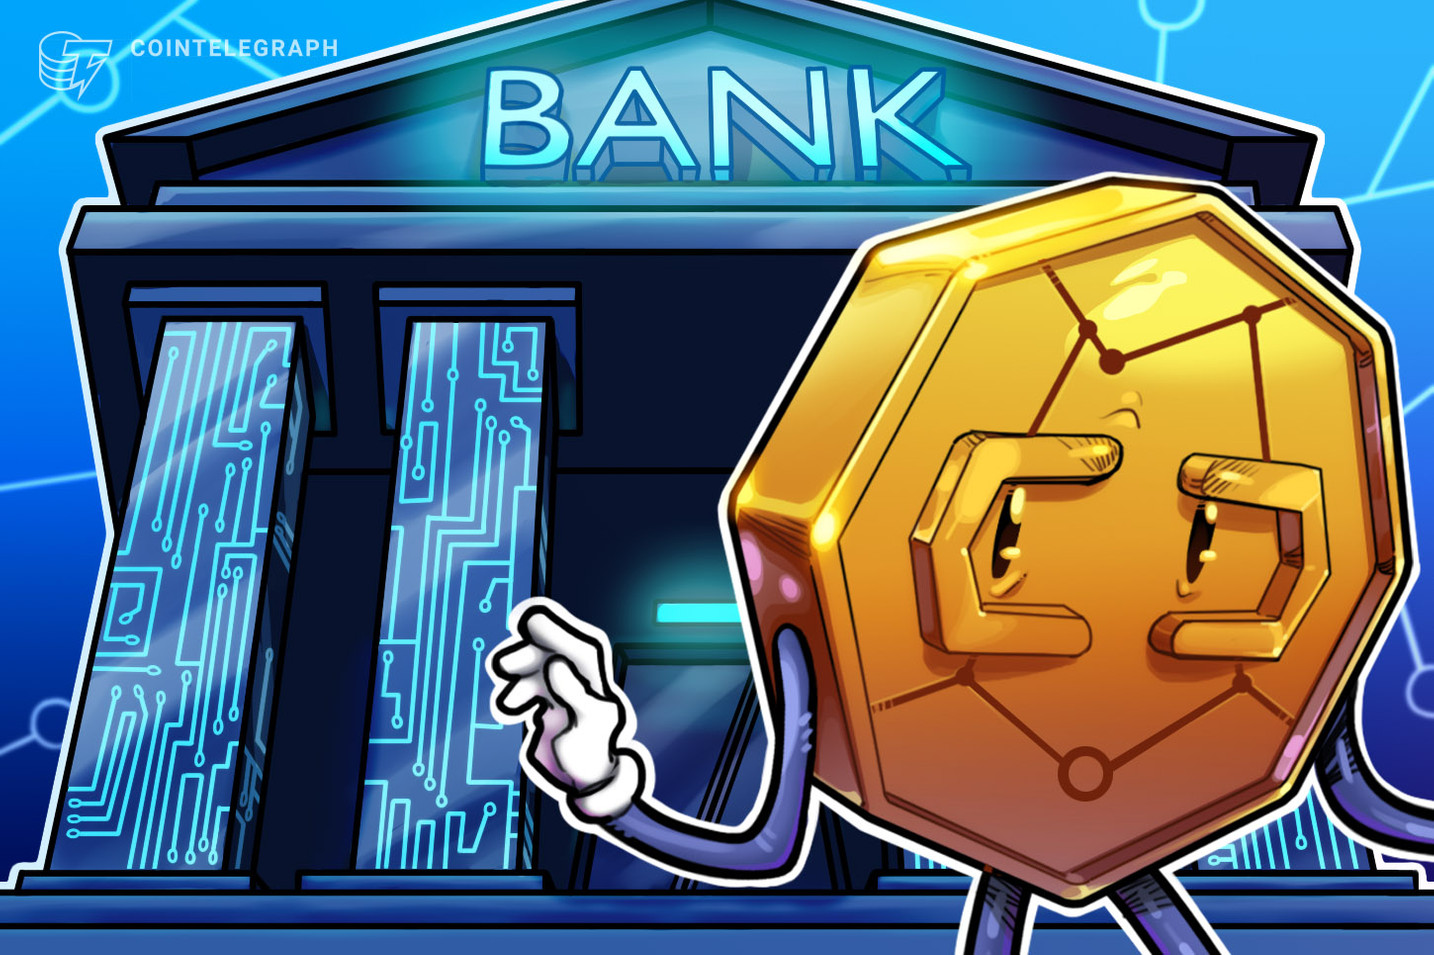 Japan: MUFG Bank Denies Reports It is Developing New Digital Currency